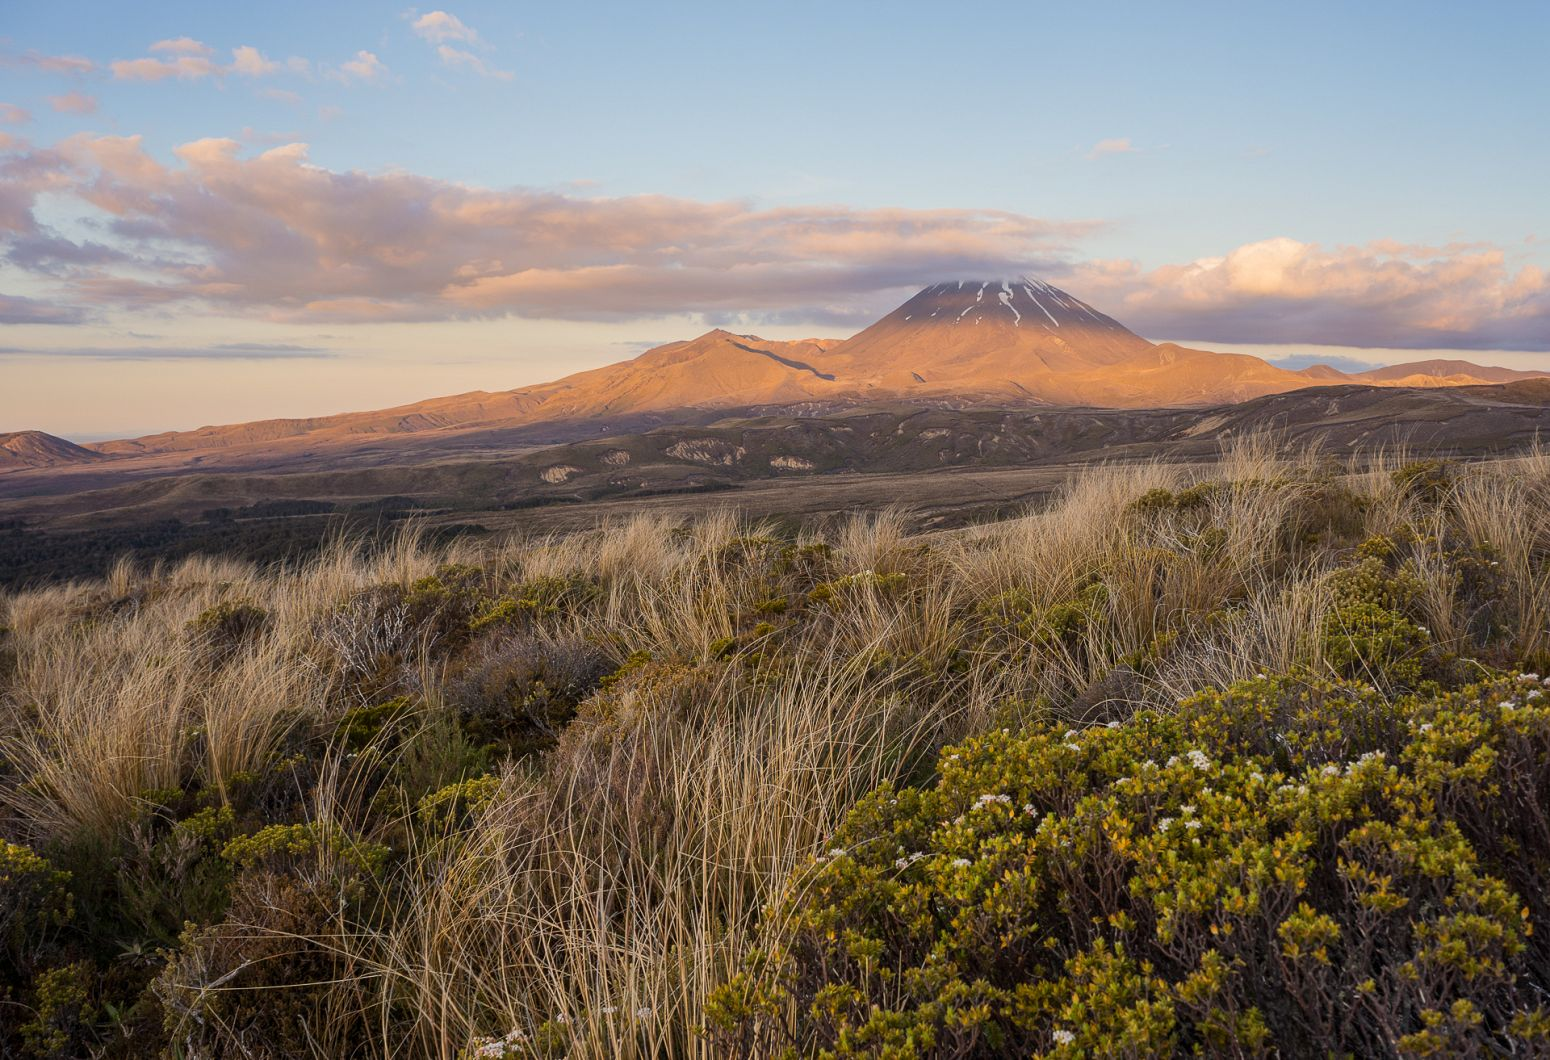 Mt Ngauruhoe in Tongariro NP, New Zealand